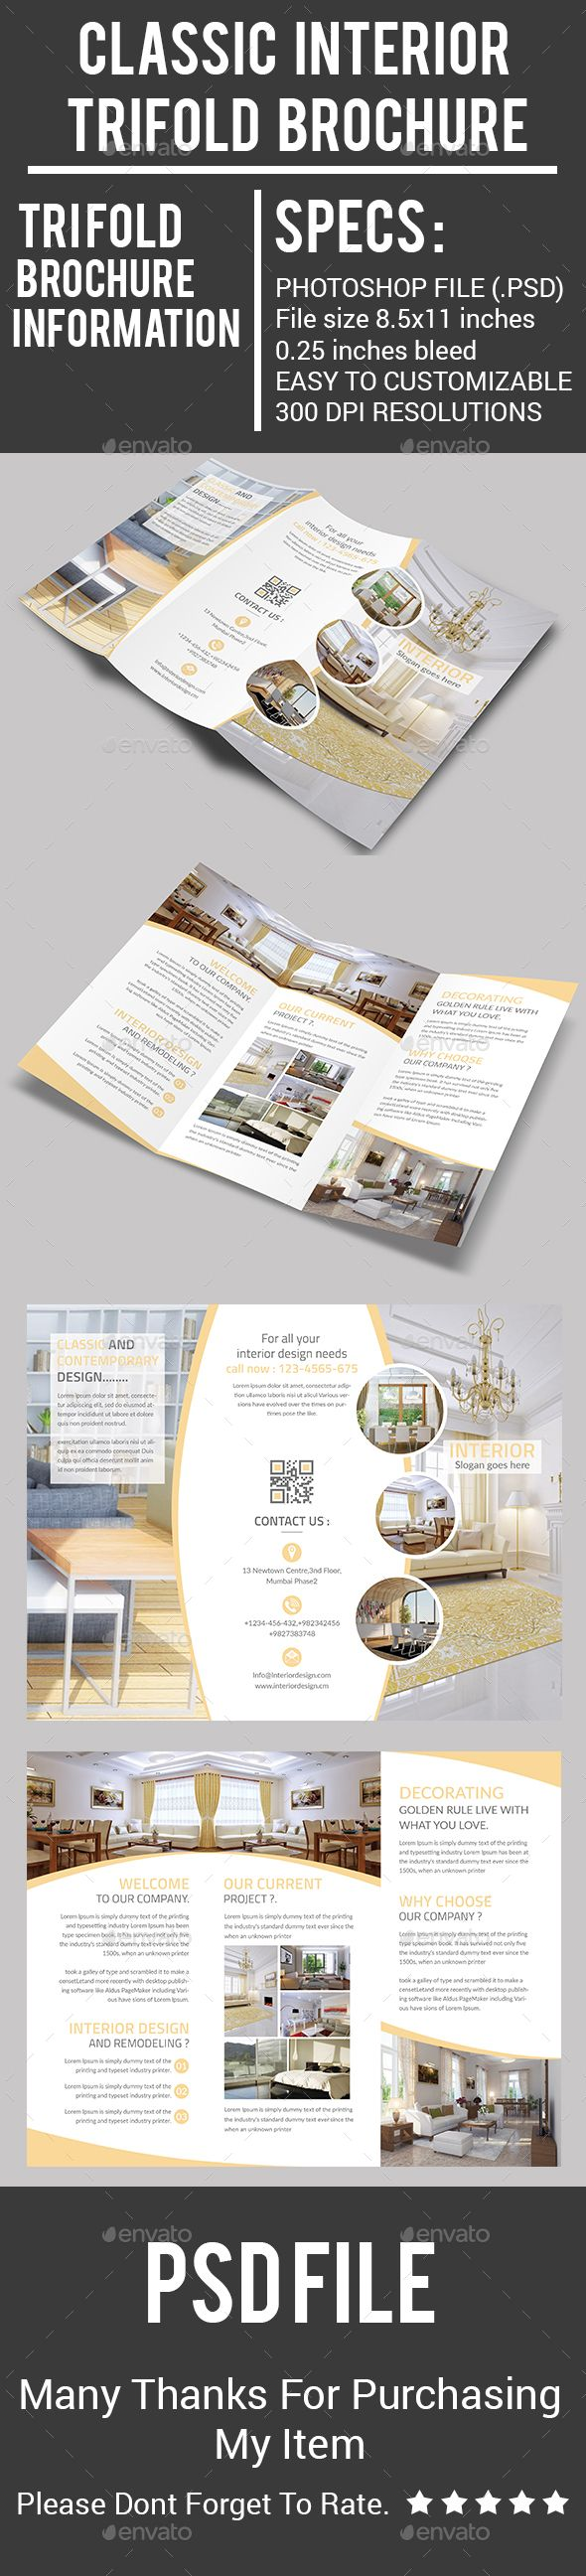 Classic Interior Trifold Brochure Design Template - Corporate Brochures Template...